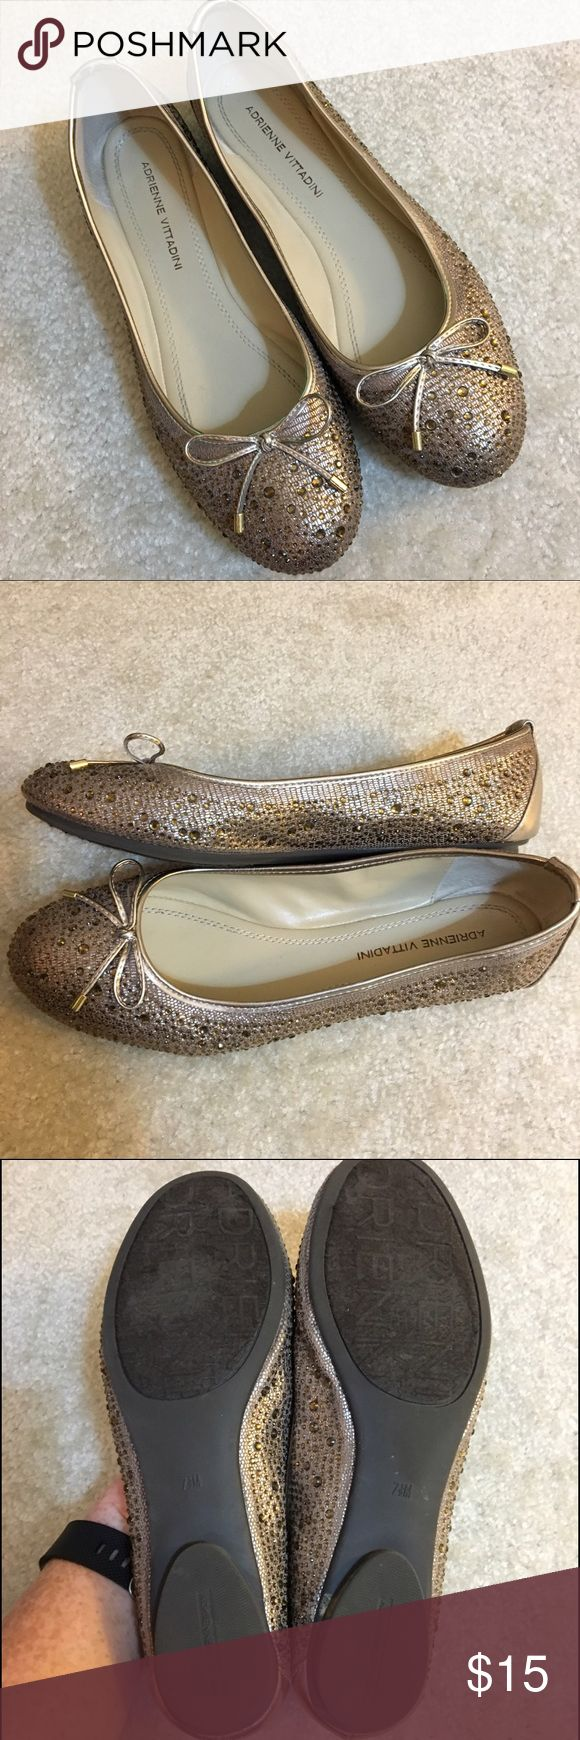 Adrienne Vittadini sparkle gold ballet flats Adrienne Vittadini sparkle gold ballet flats with bow detail and in great condition. Super cute shoes and only worn a few times Adrienne Vittadini Shoes Flats & Loafers